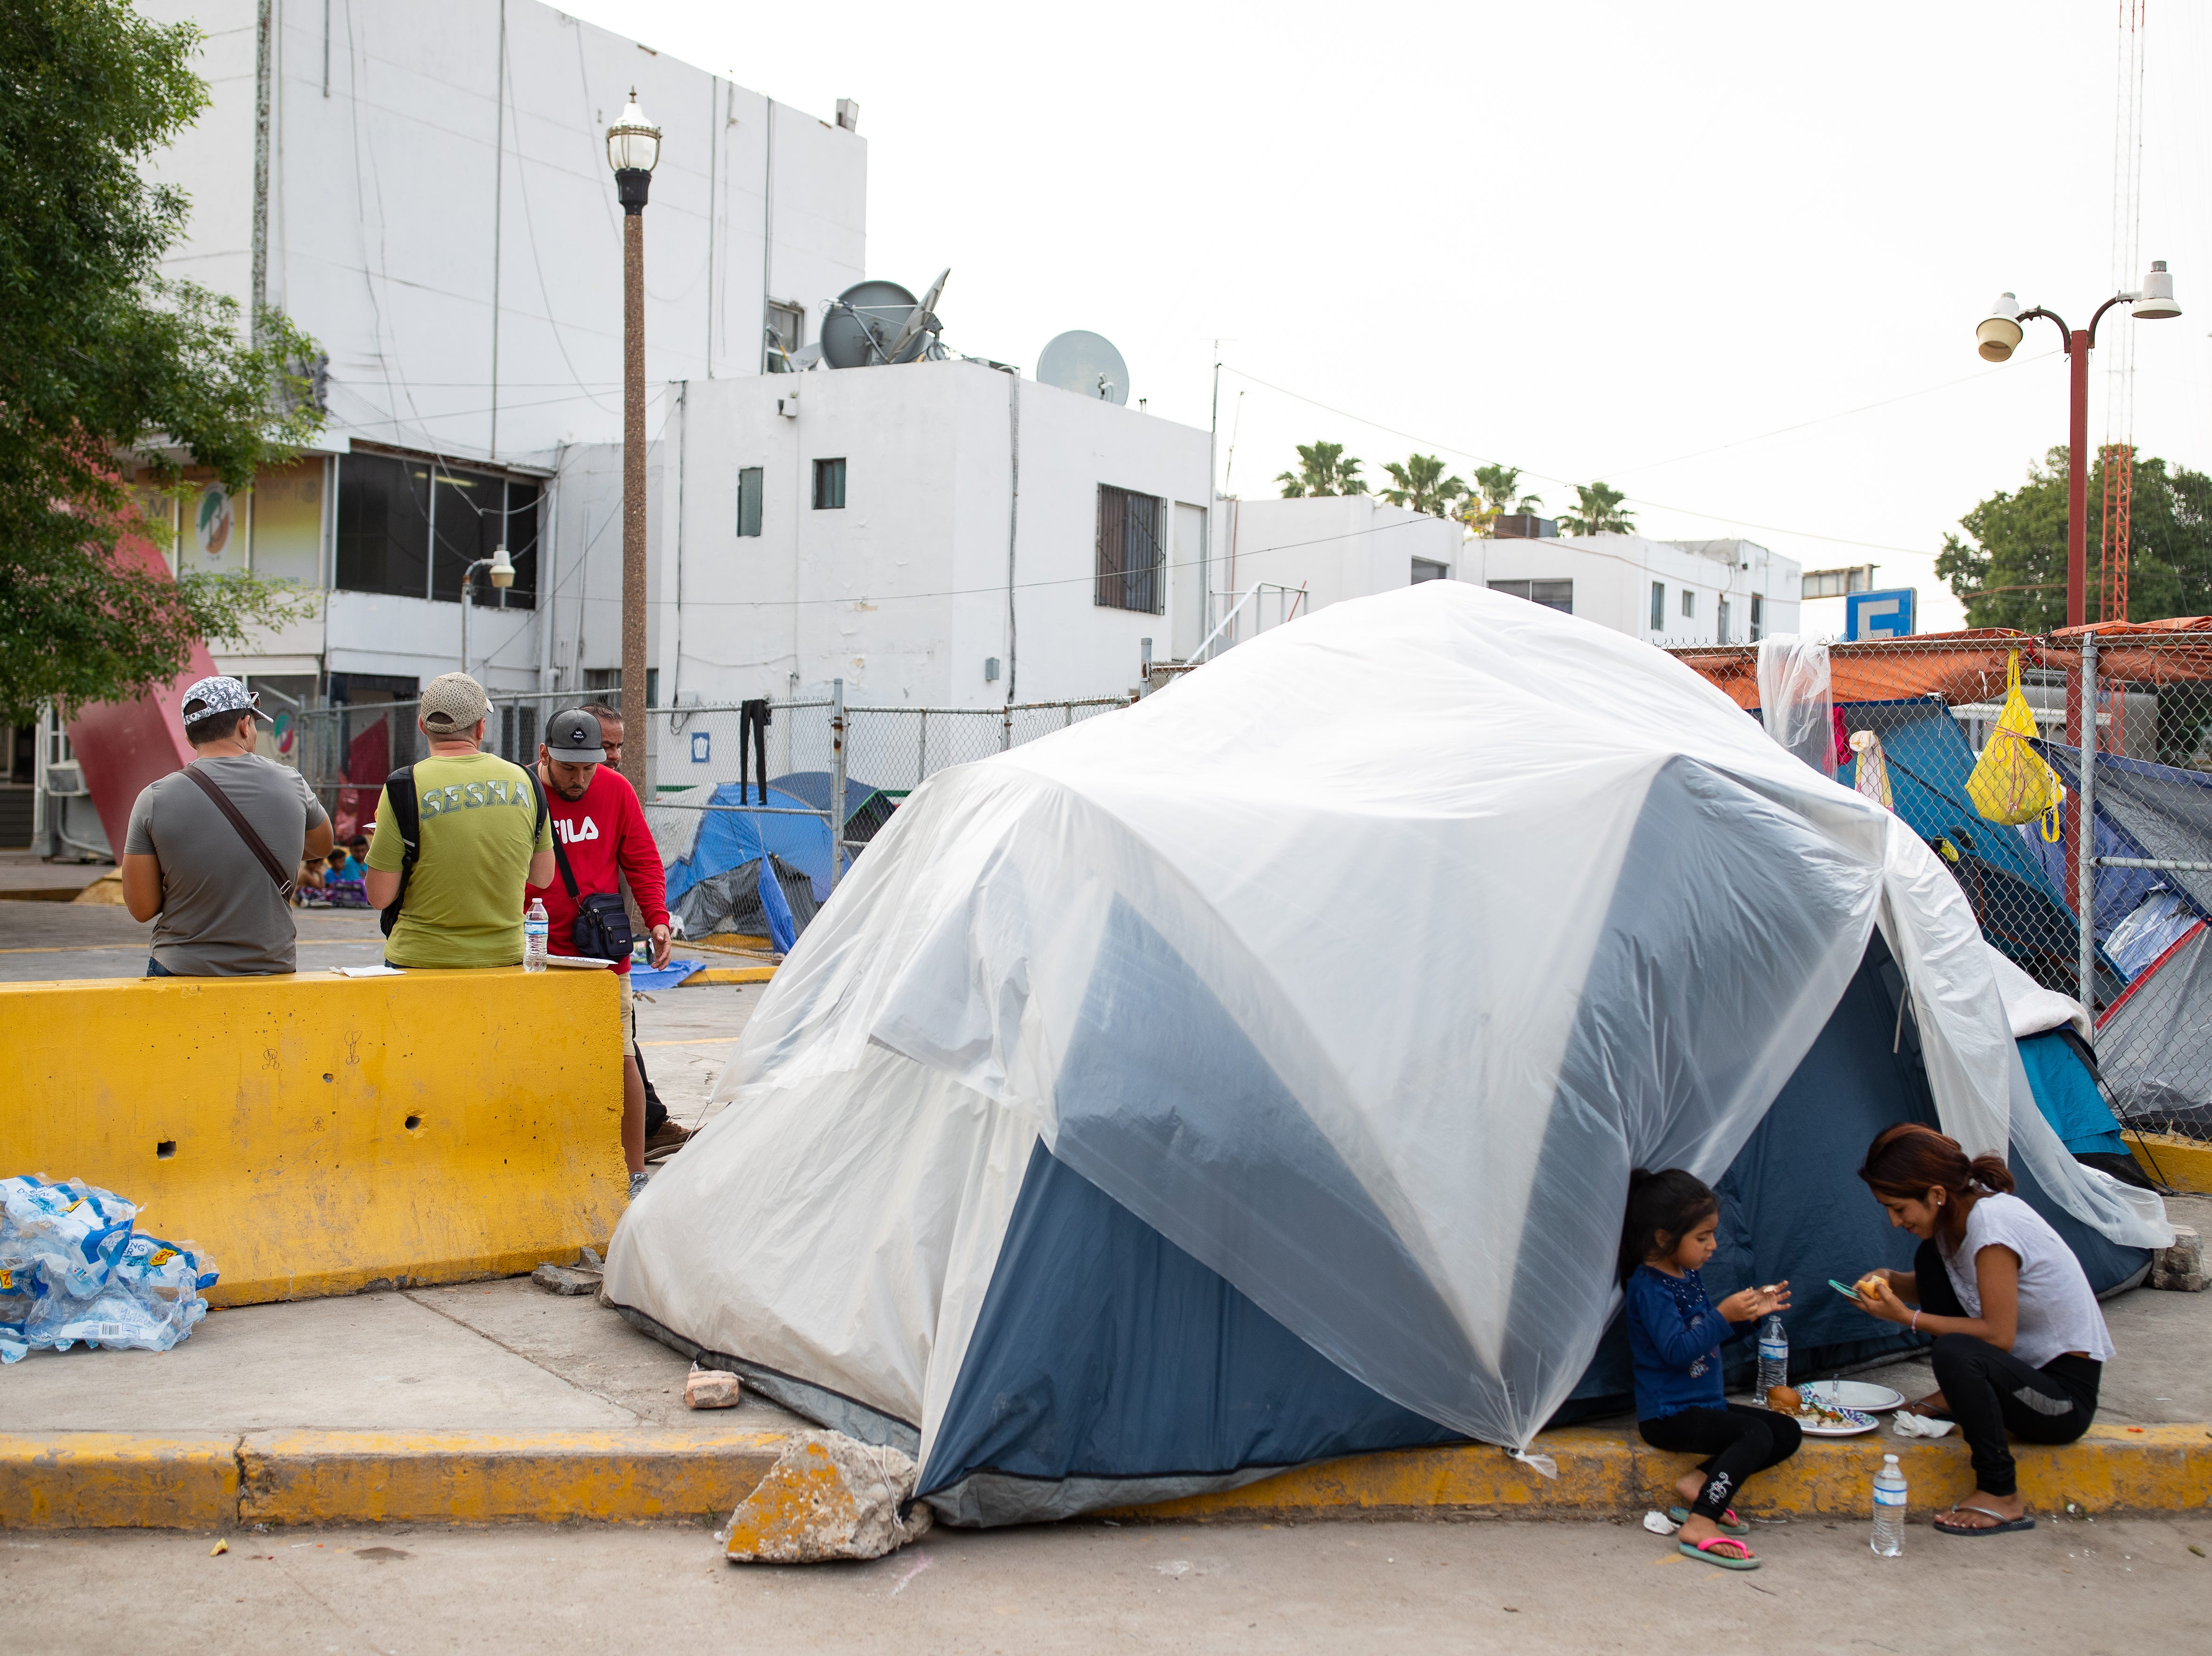 A migrant woman and a young girl eat their dinner next to their tent near the international bridge in Matamoros, Mexico along with other Central American migrants on Thursday, April 4, 2019, waiting in Mexico to seek asylum in the U.S.